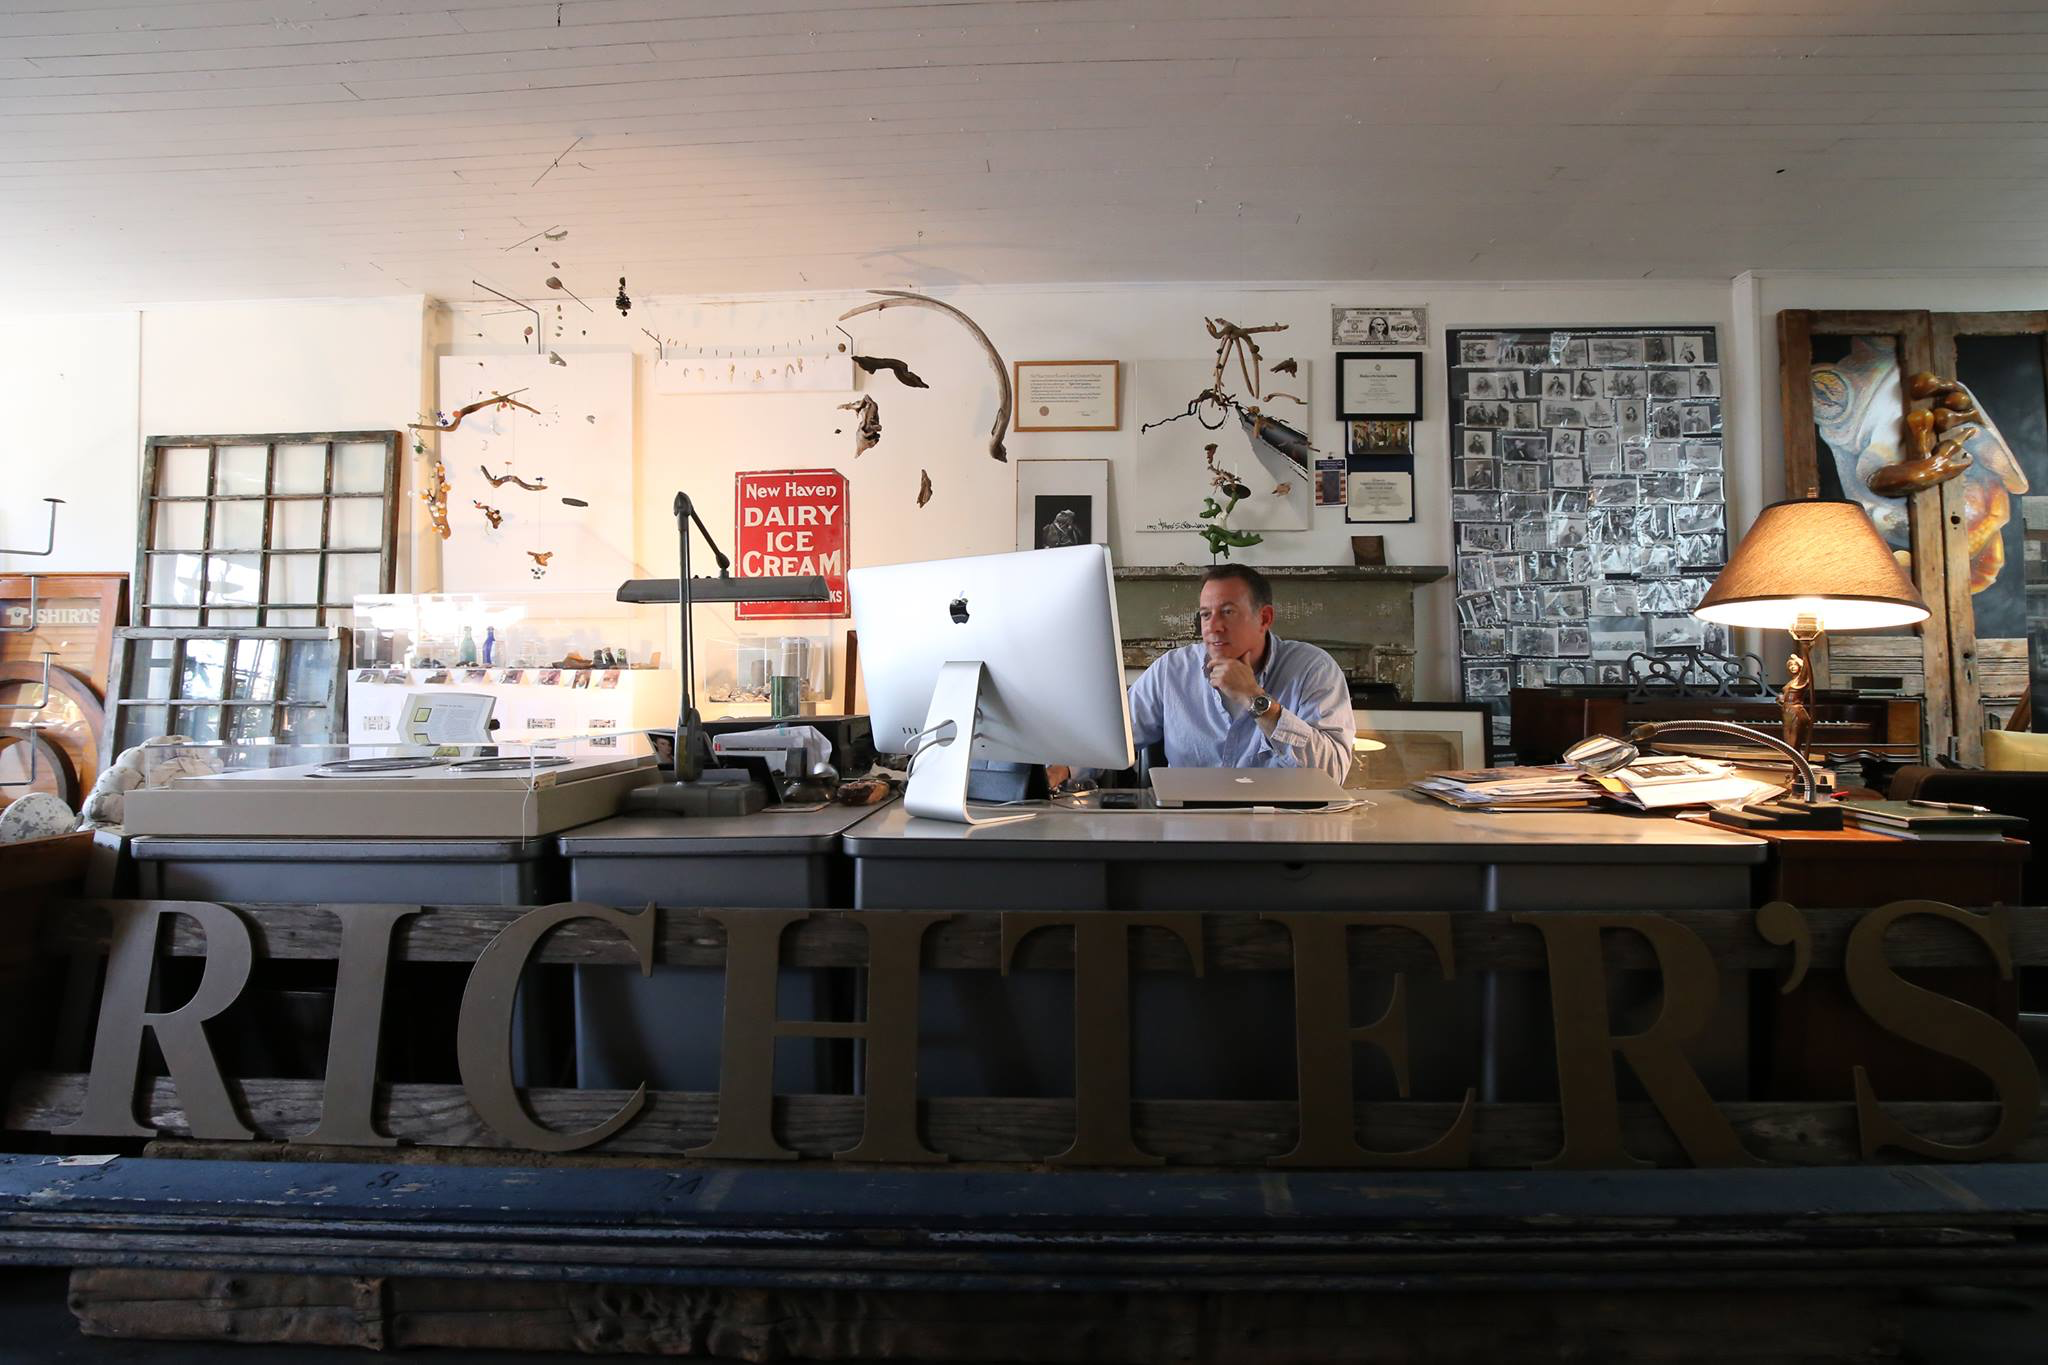 The artist in his original studio workspace at the historic ACME building.